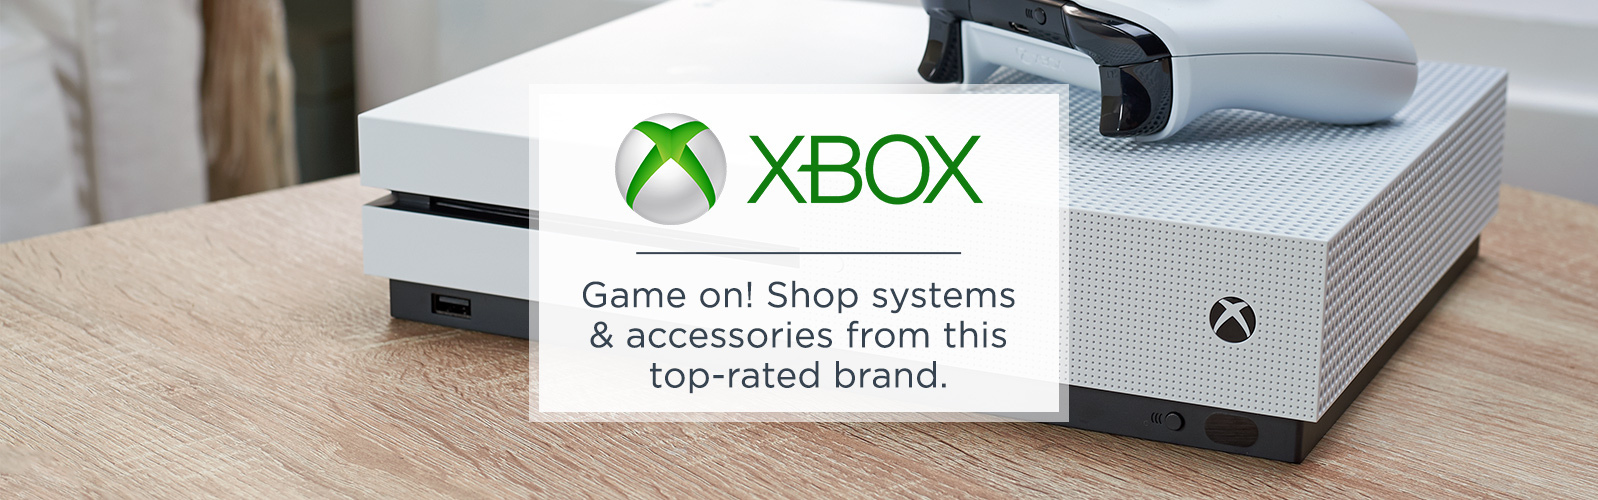 Xbox. Game on! Shop systems & accessories from this top-rated brand.